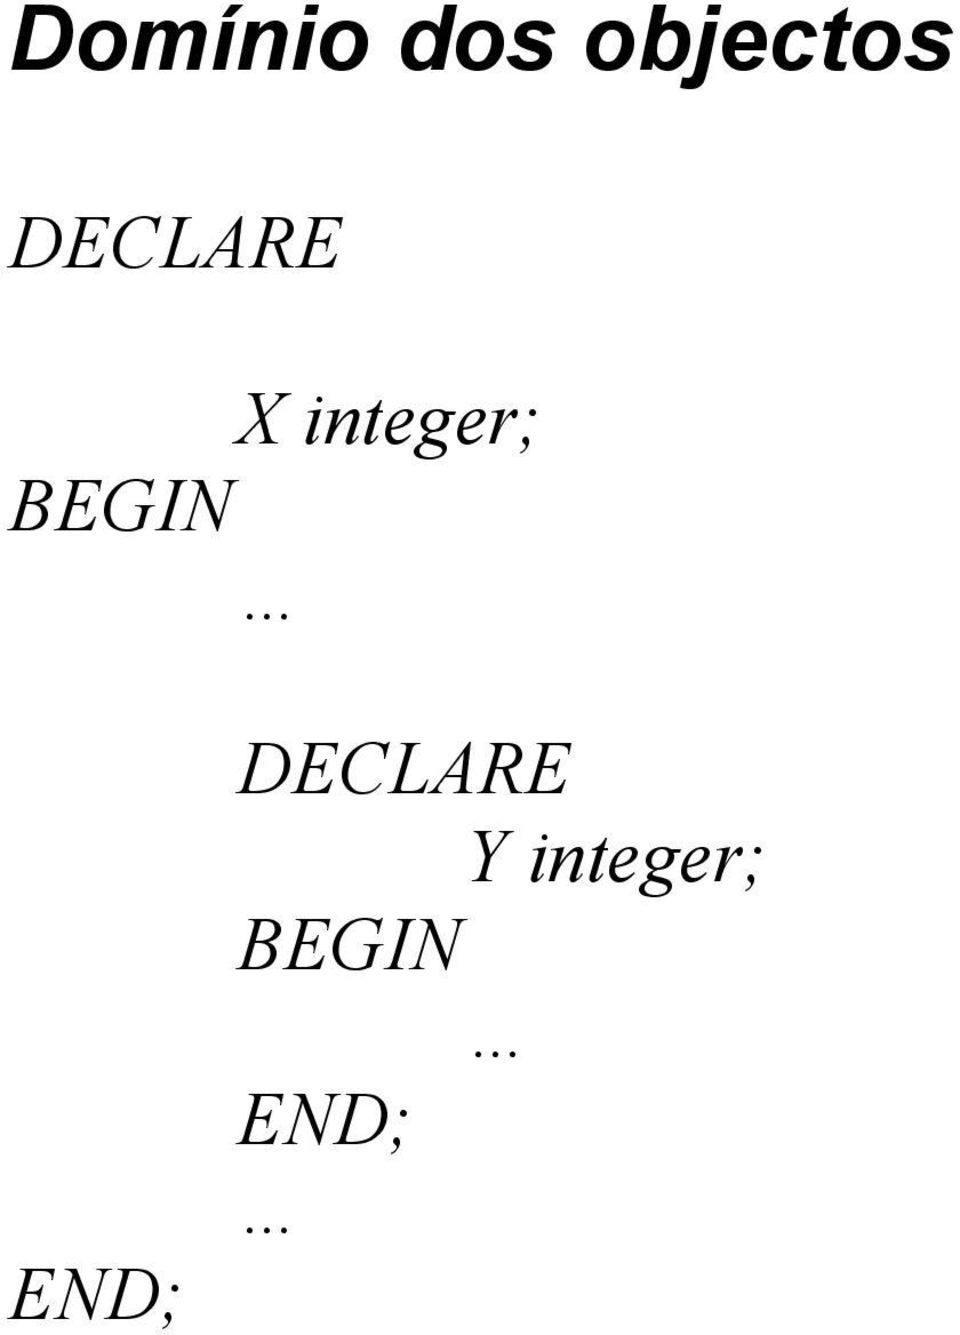 X integer; END;